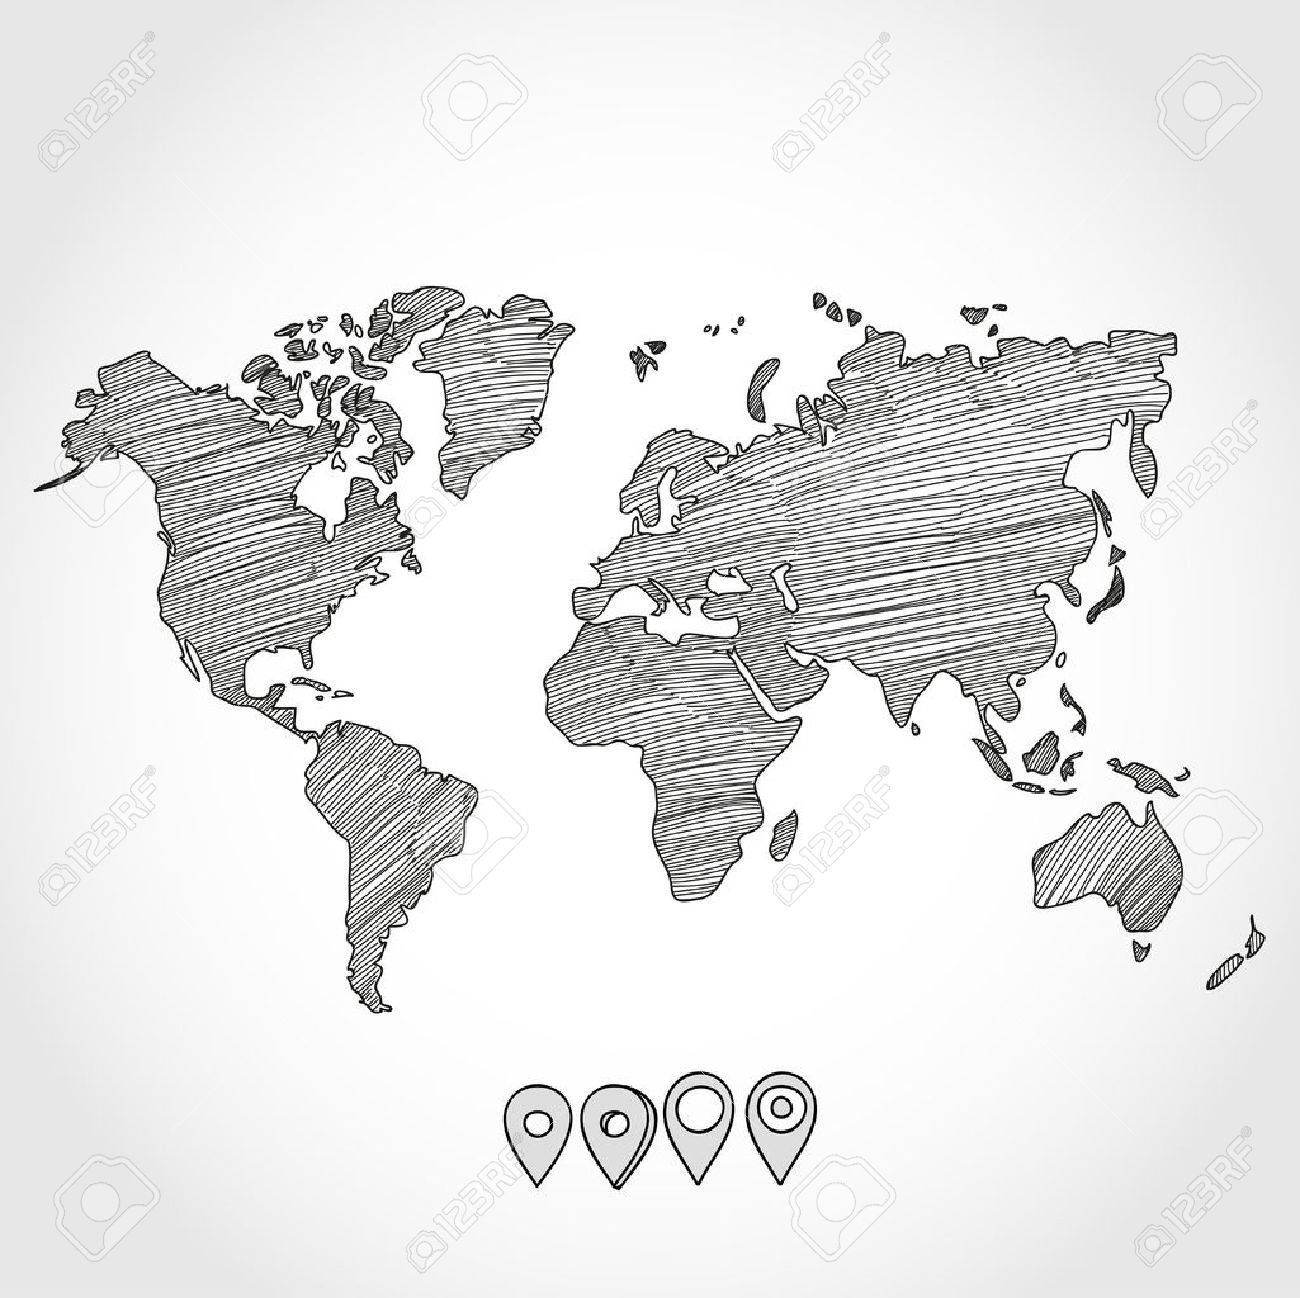 hand drawn doodle sketch political world map and geo tag pin pointers marker vector illustration